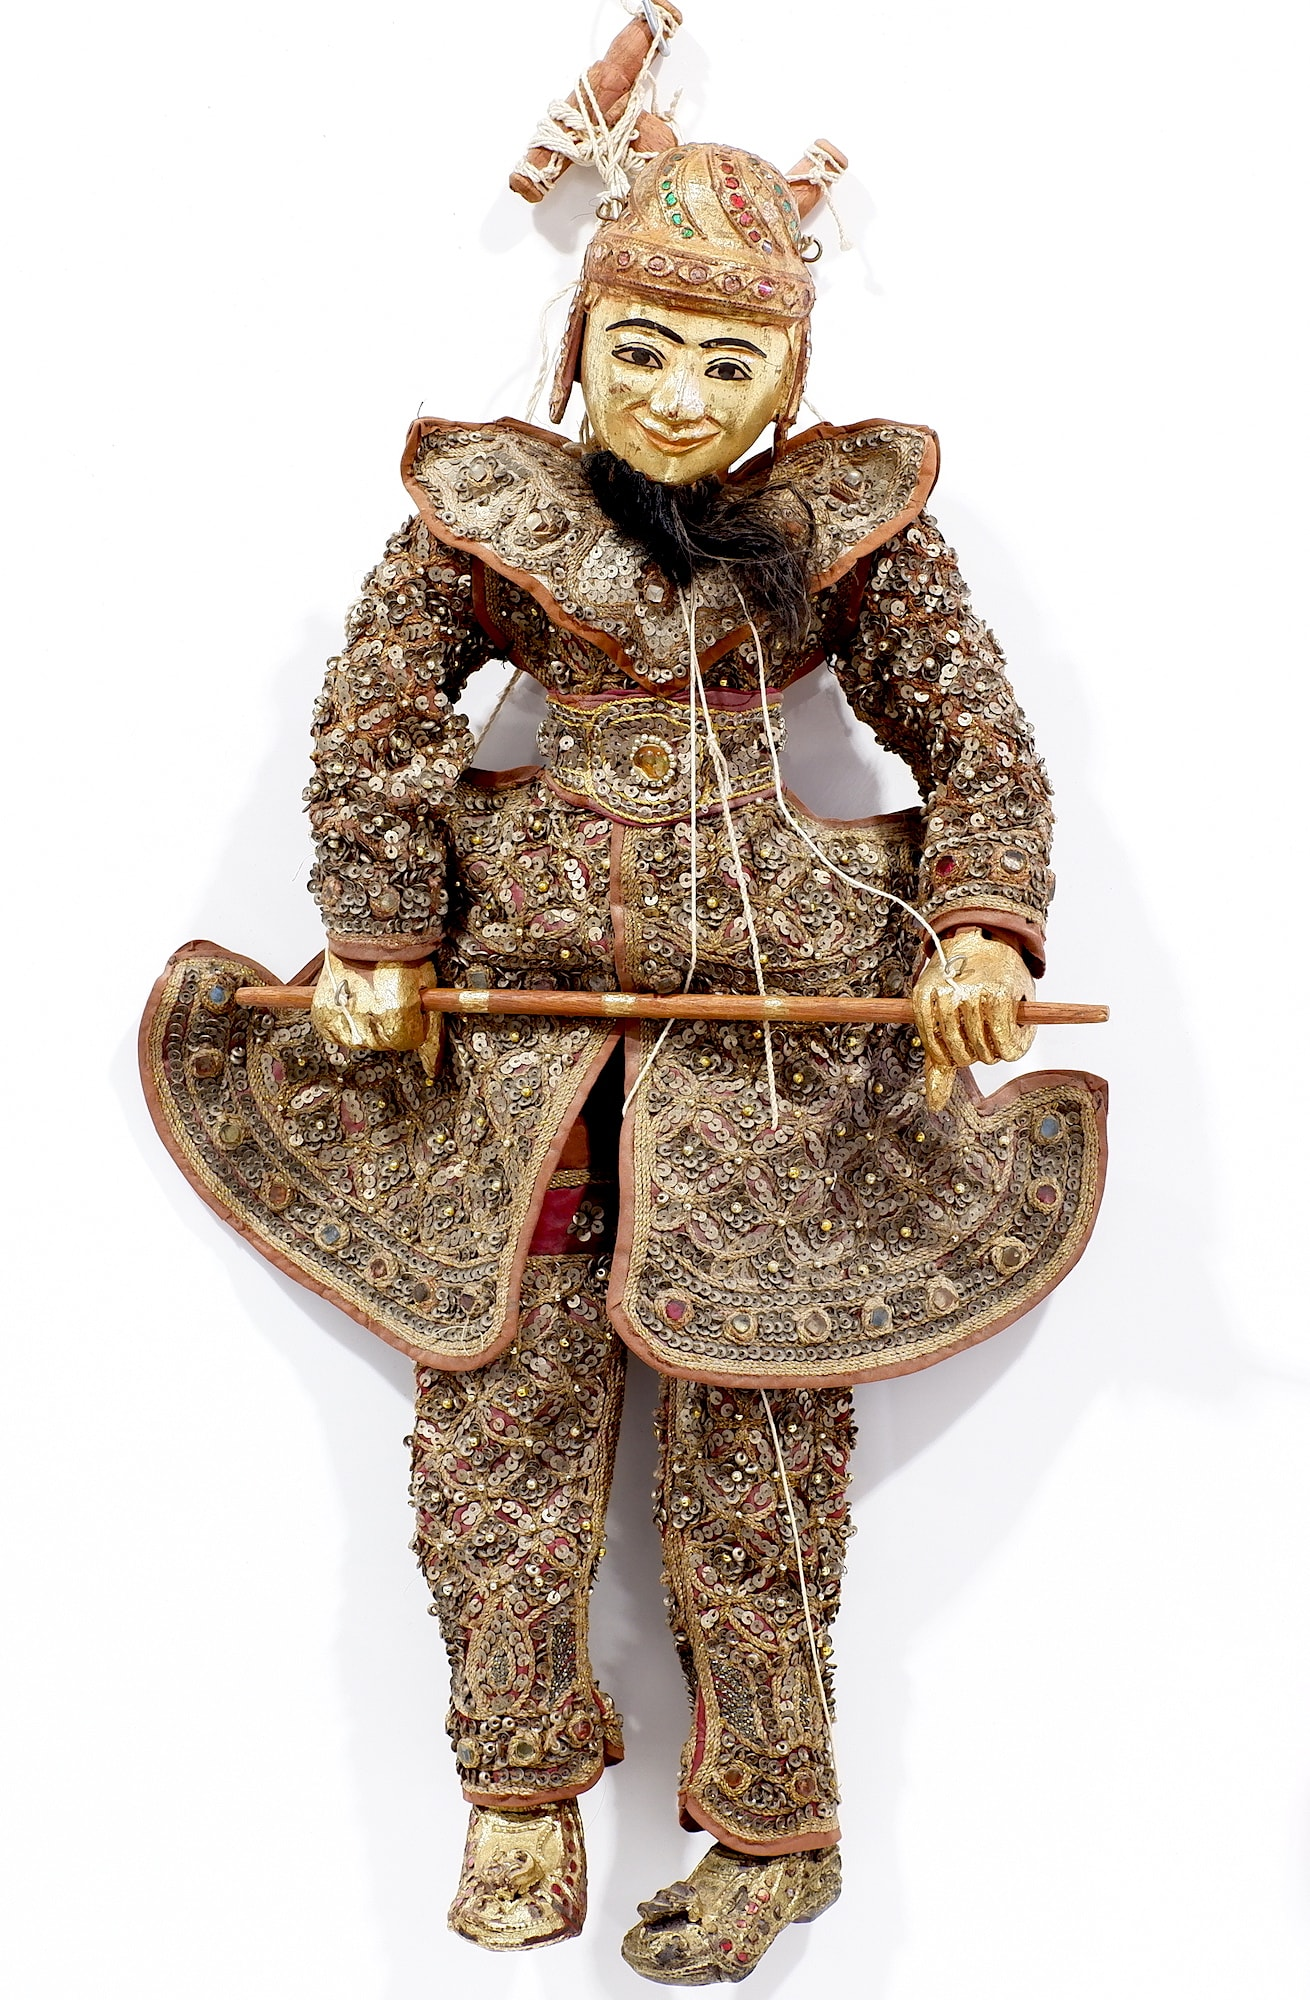 'Old Burmese Marionette Puppet with Lavishly Sequined Garments and Glass Jewells'